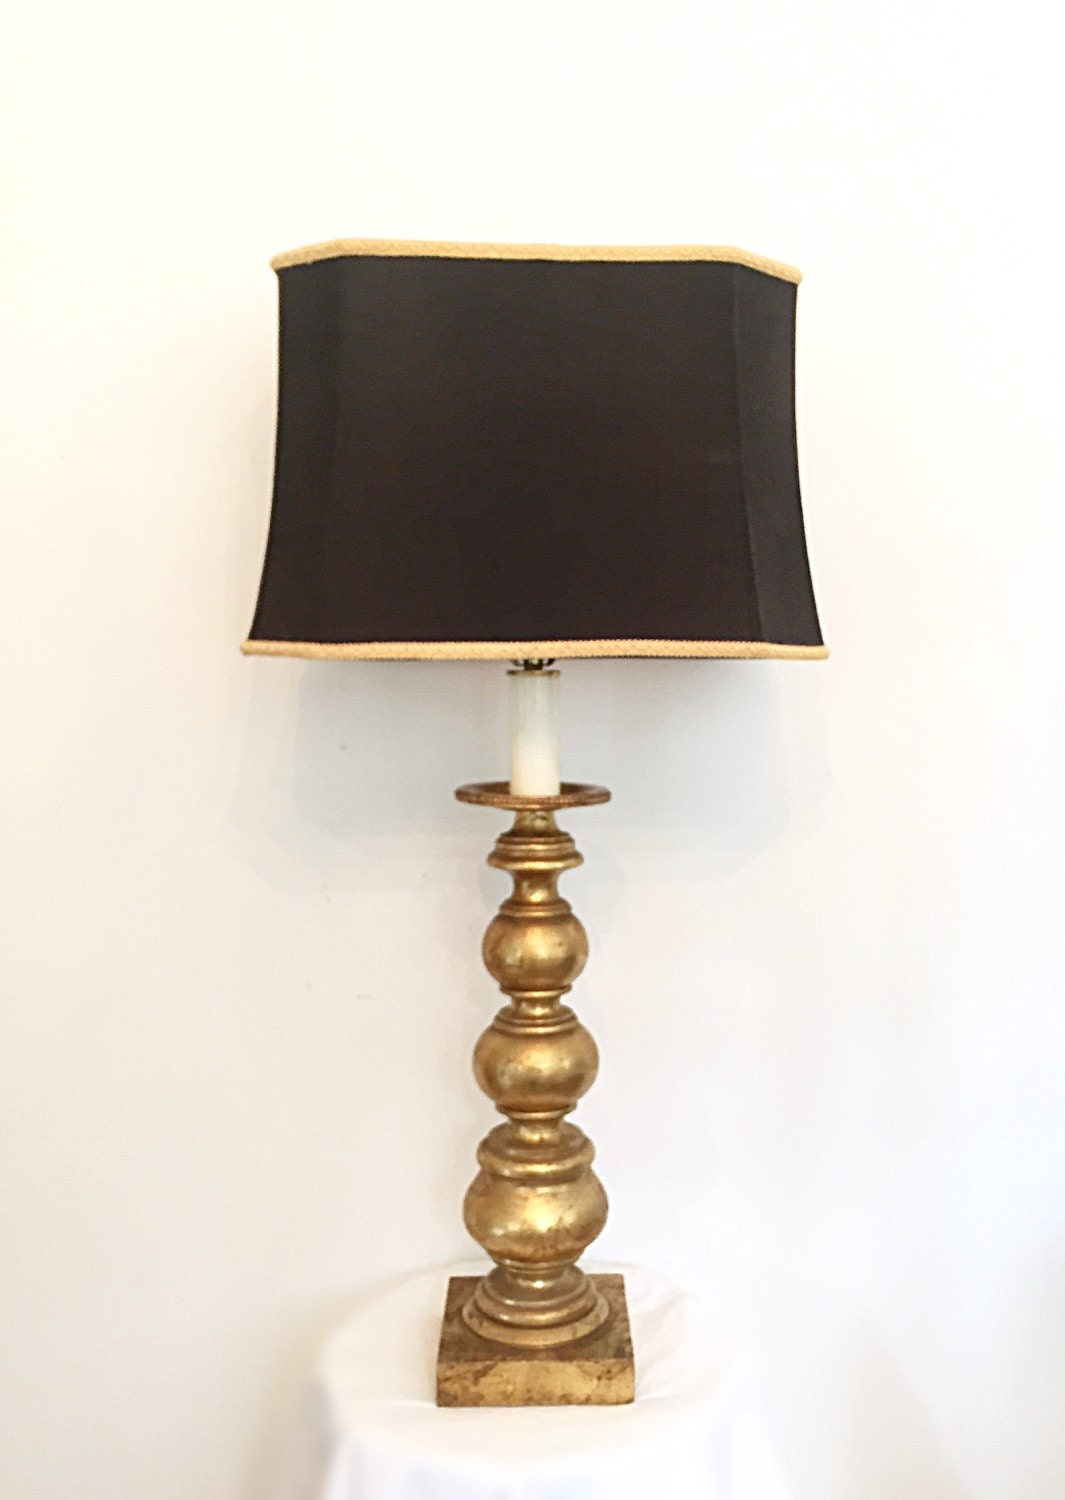 elegant gold and black table lamp by farmhousefare on etsy. Black Bedroom Furniture Sets. Home Design Ideas